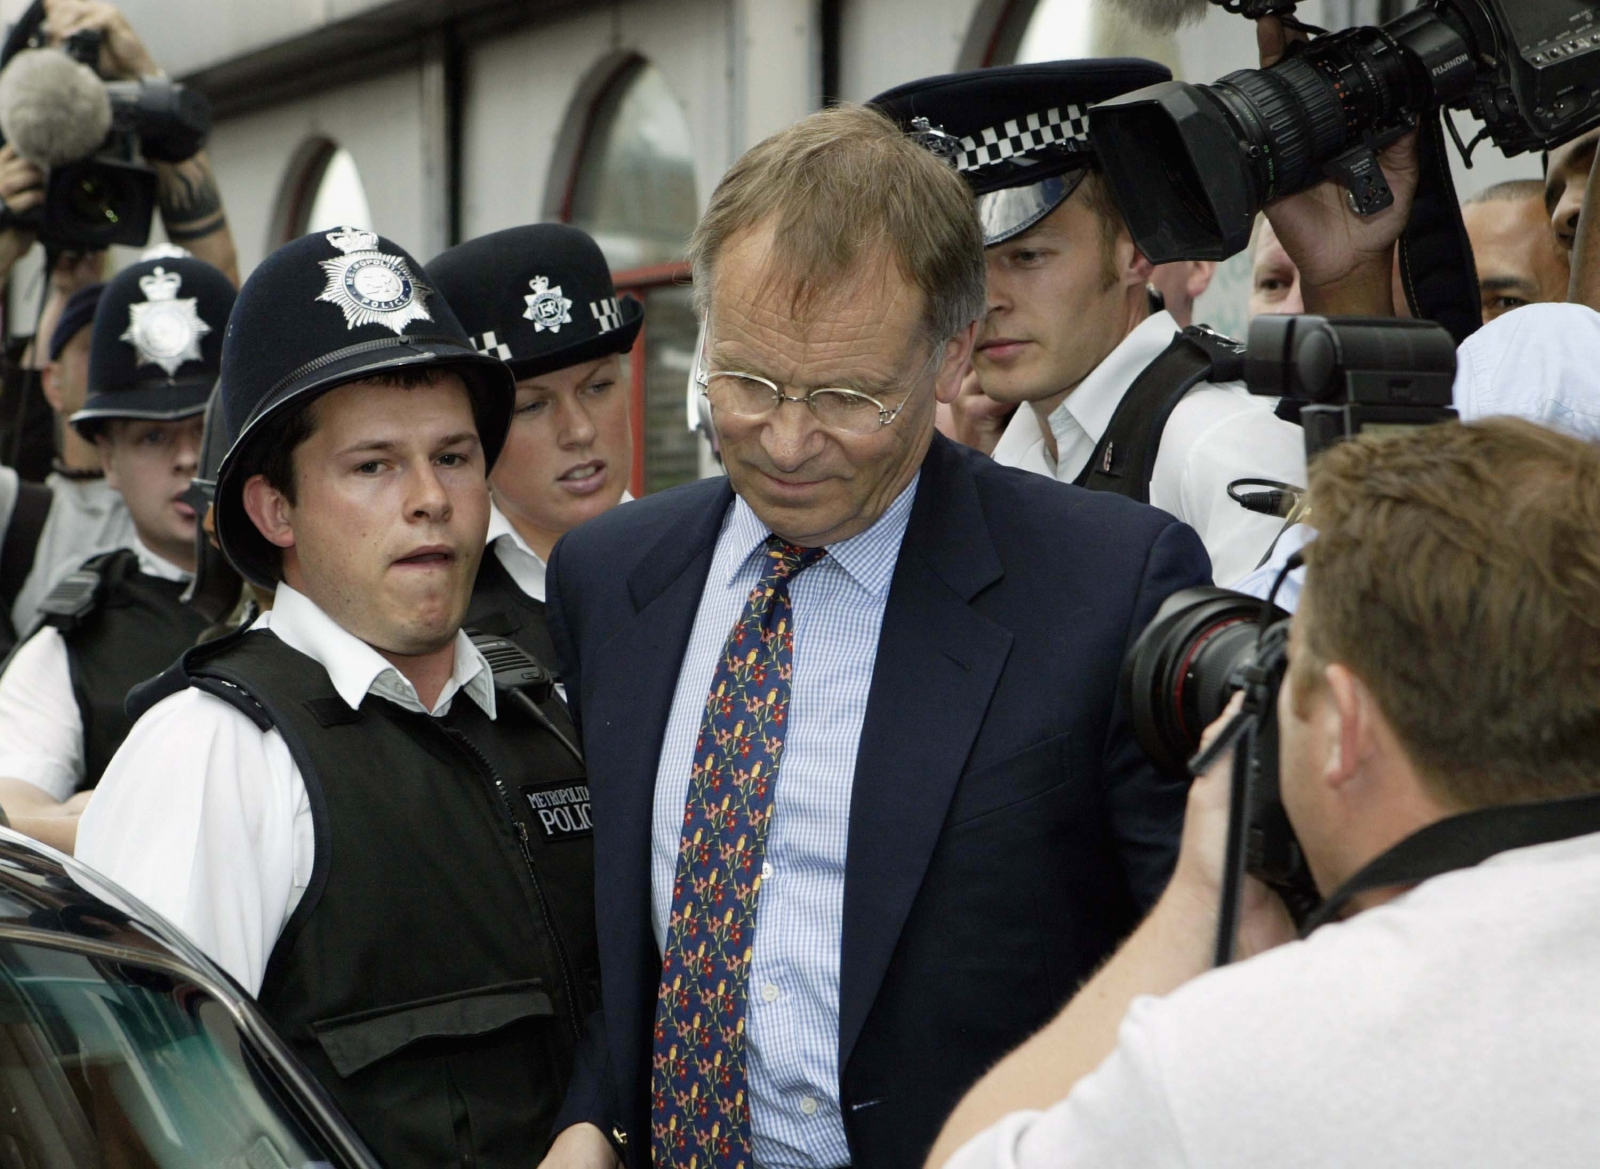 Lord Jeffrey Archer in 2003